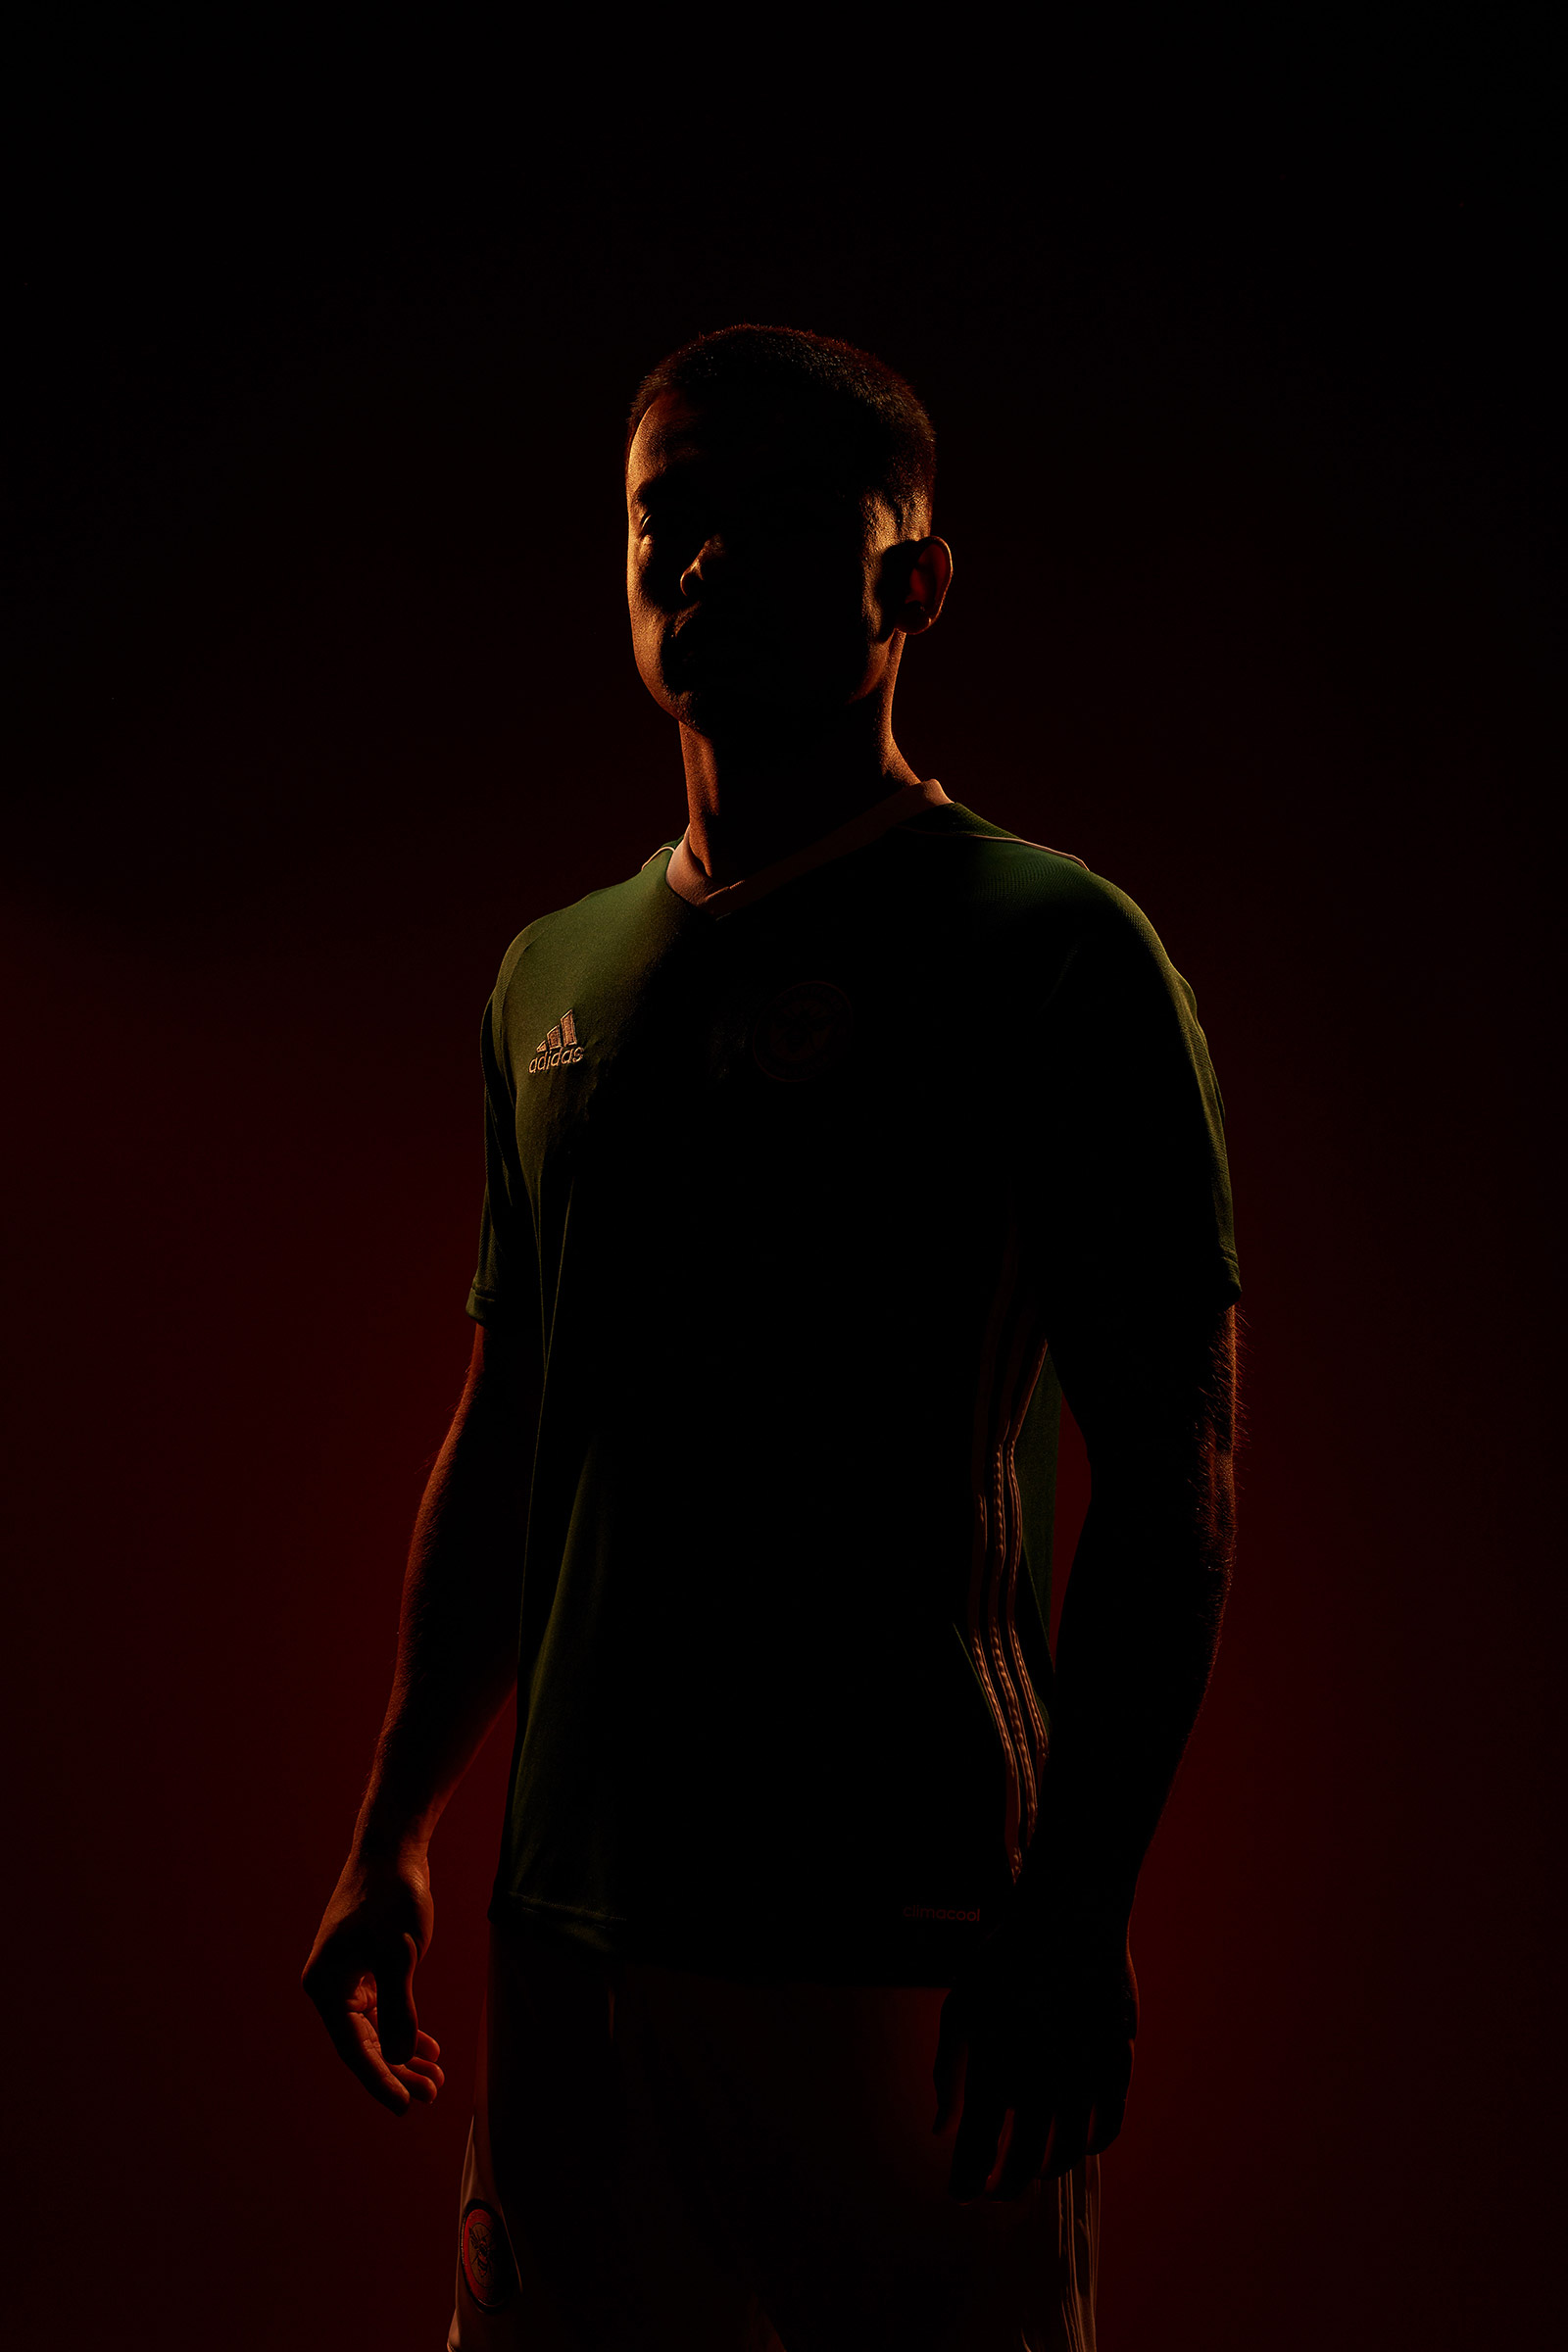 Brentford FC 2017/18 Adidas Kit Launch teasers